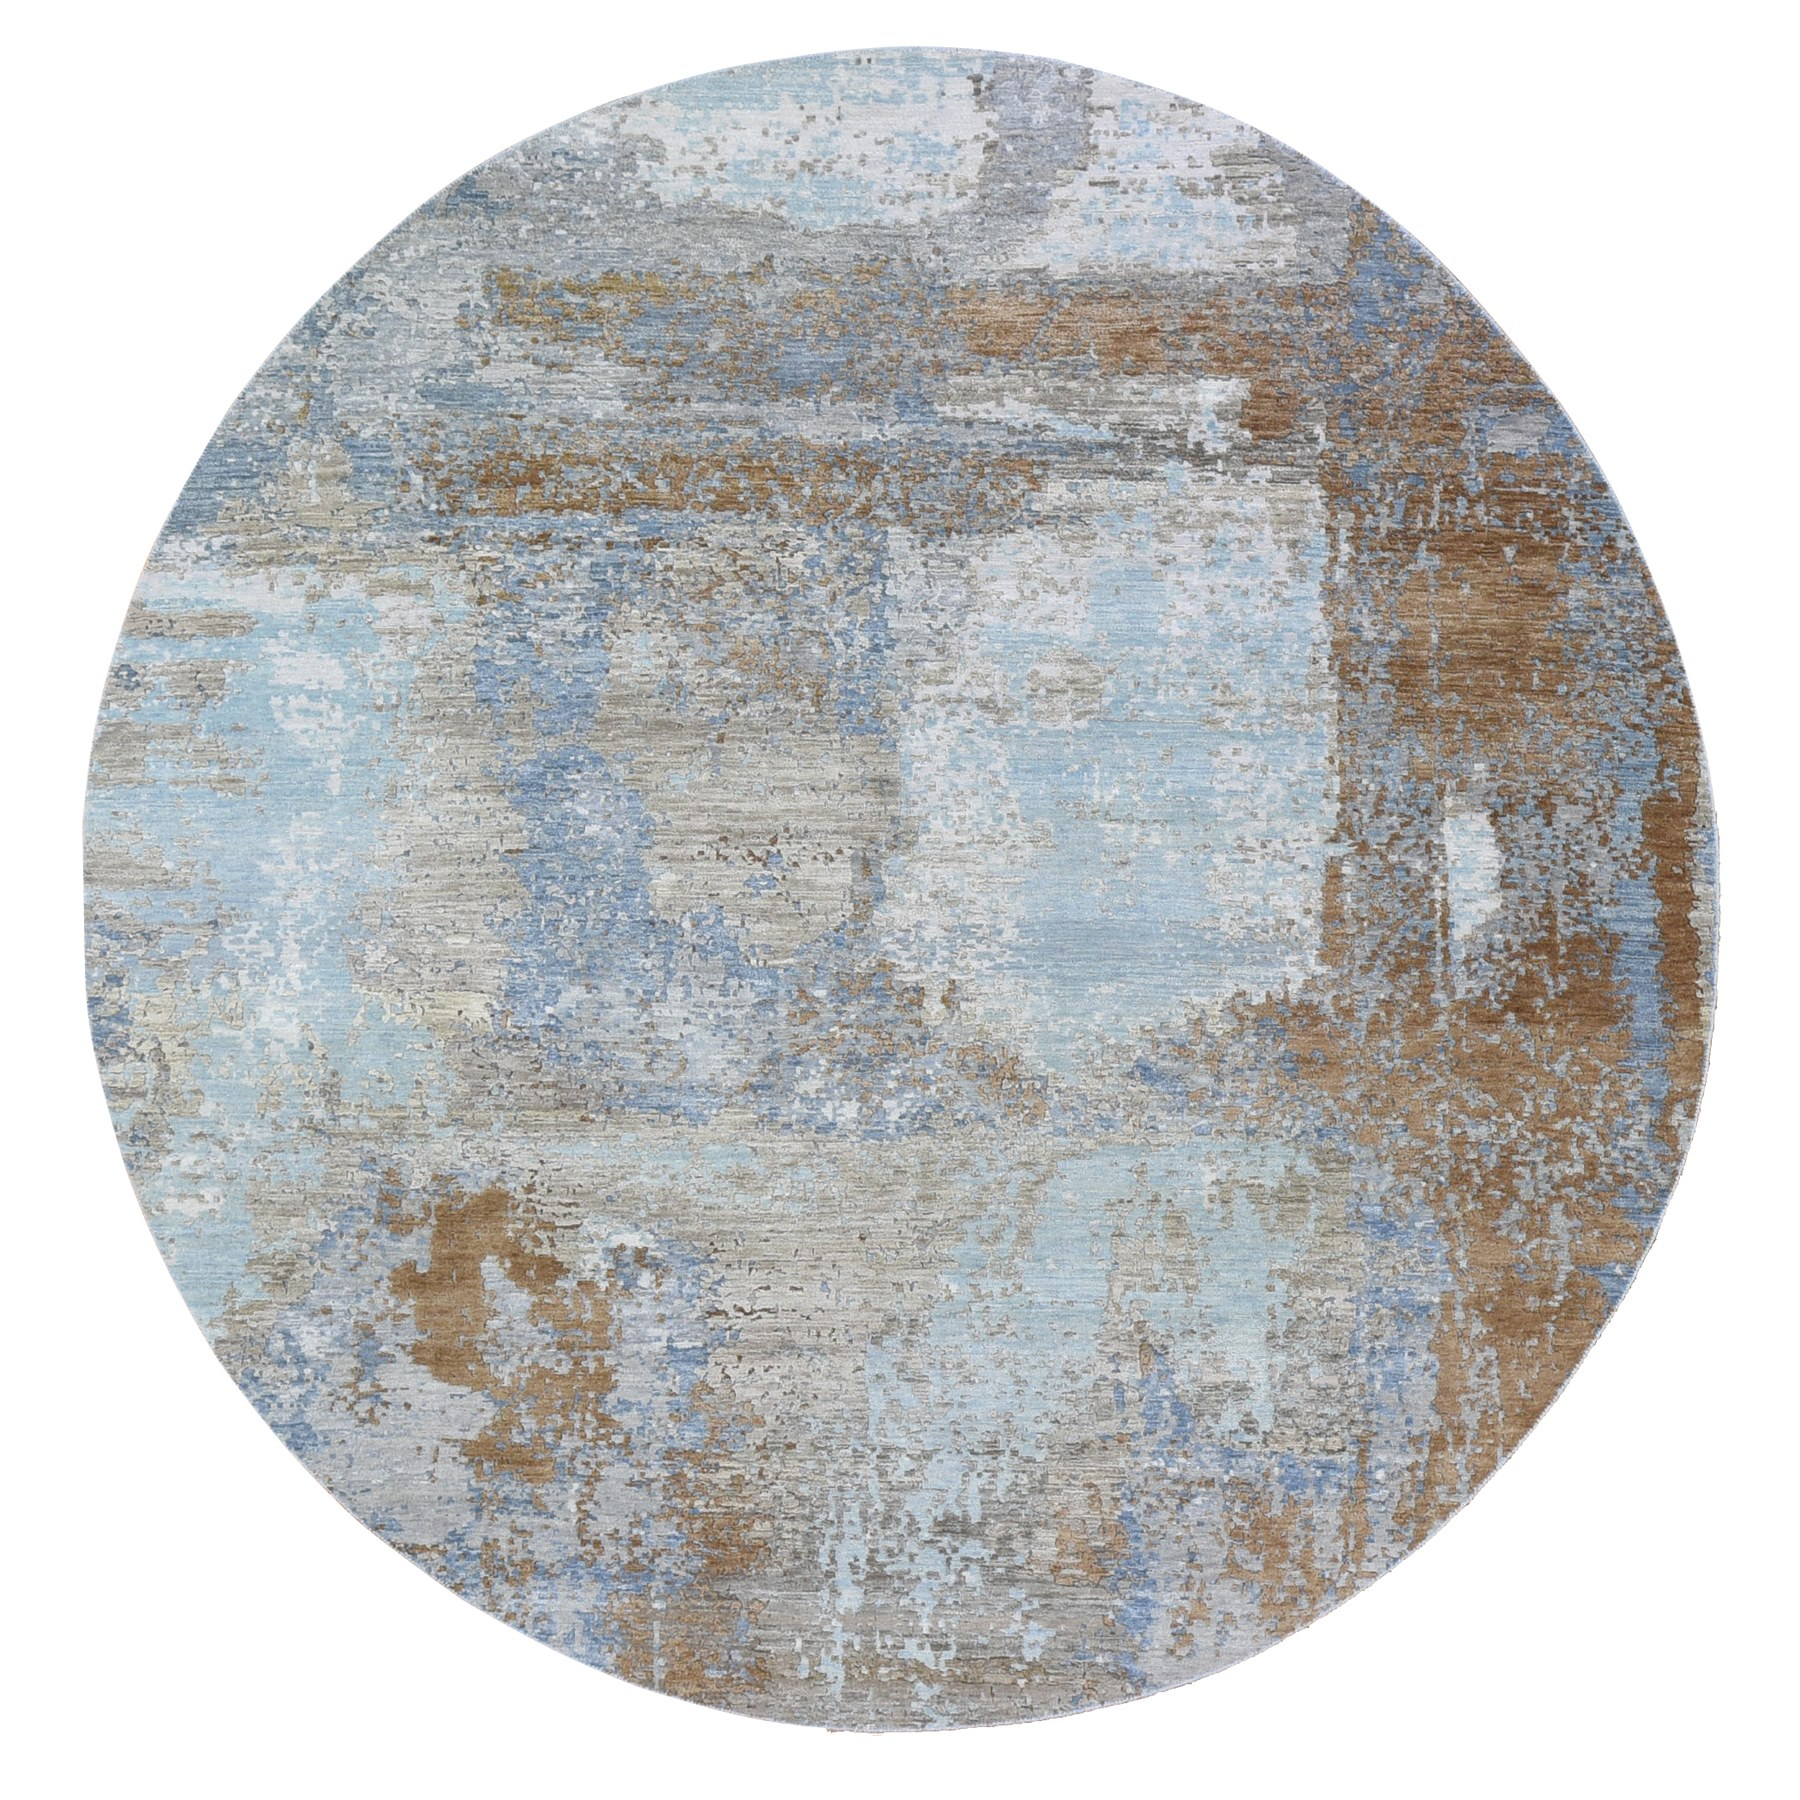 8'x8' Turquoise Abstract Design Wool and Silk Hi-Low Pile Denser Weave Hand Knotted Round Oriental Rug